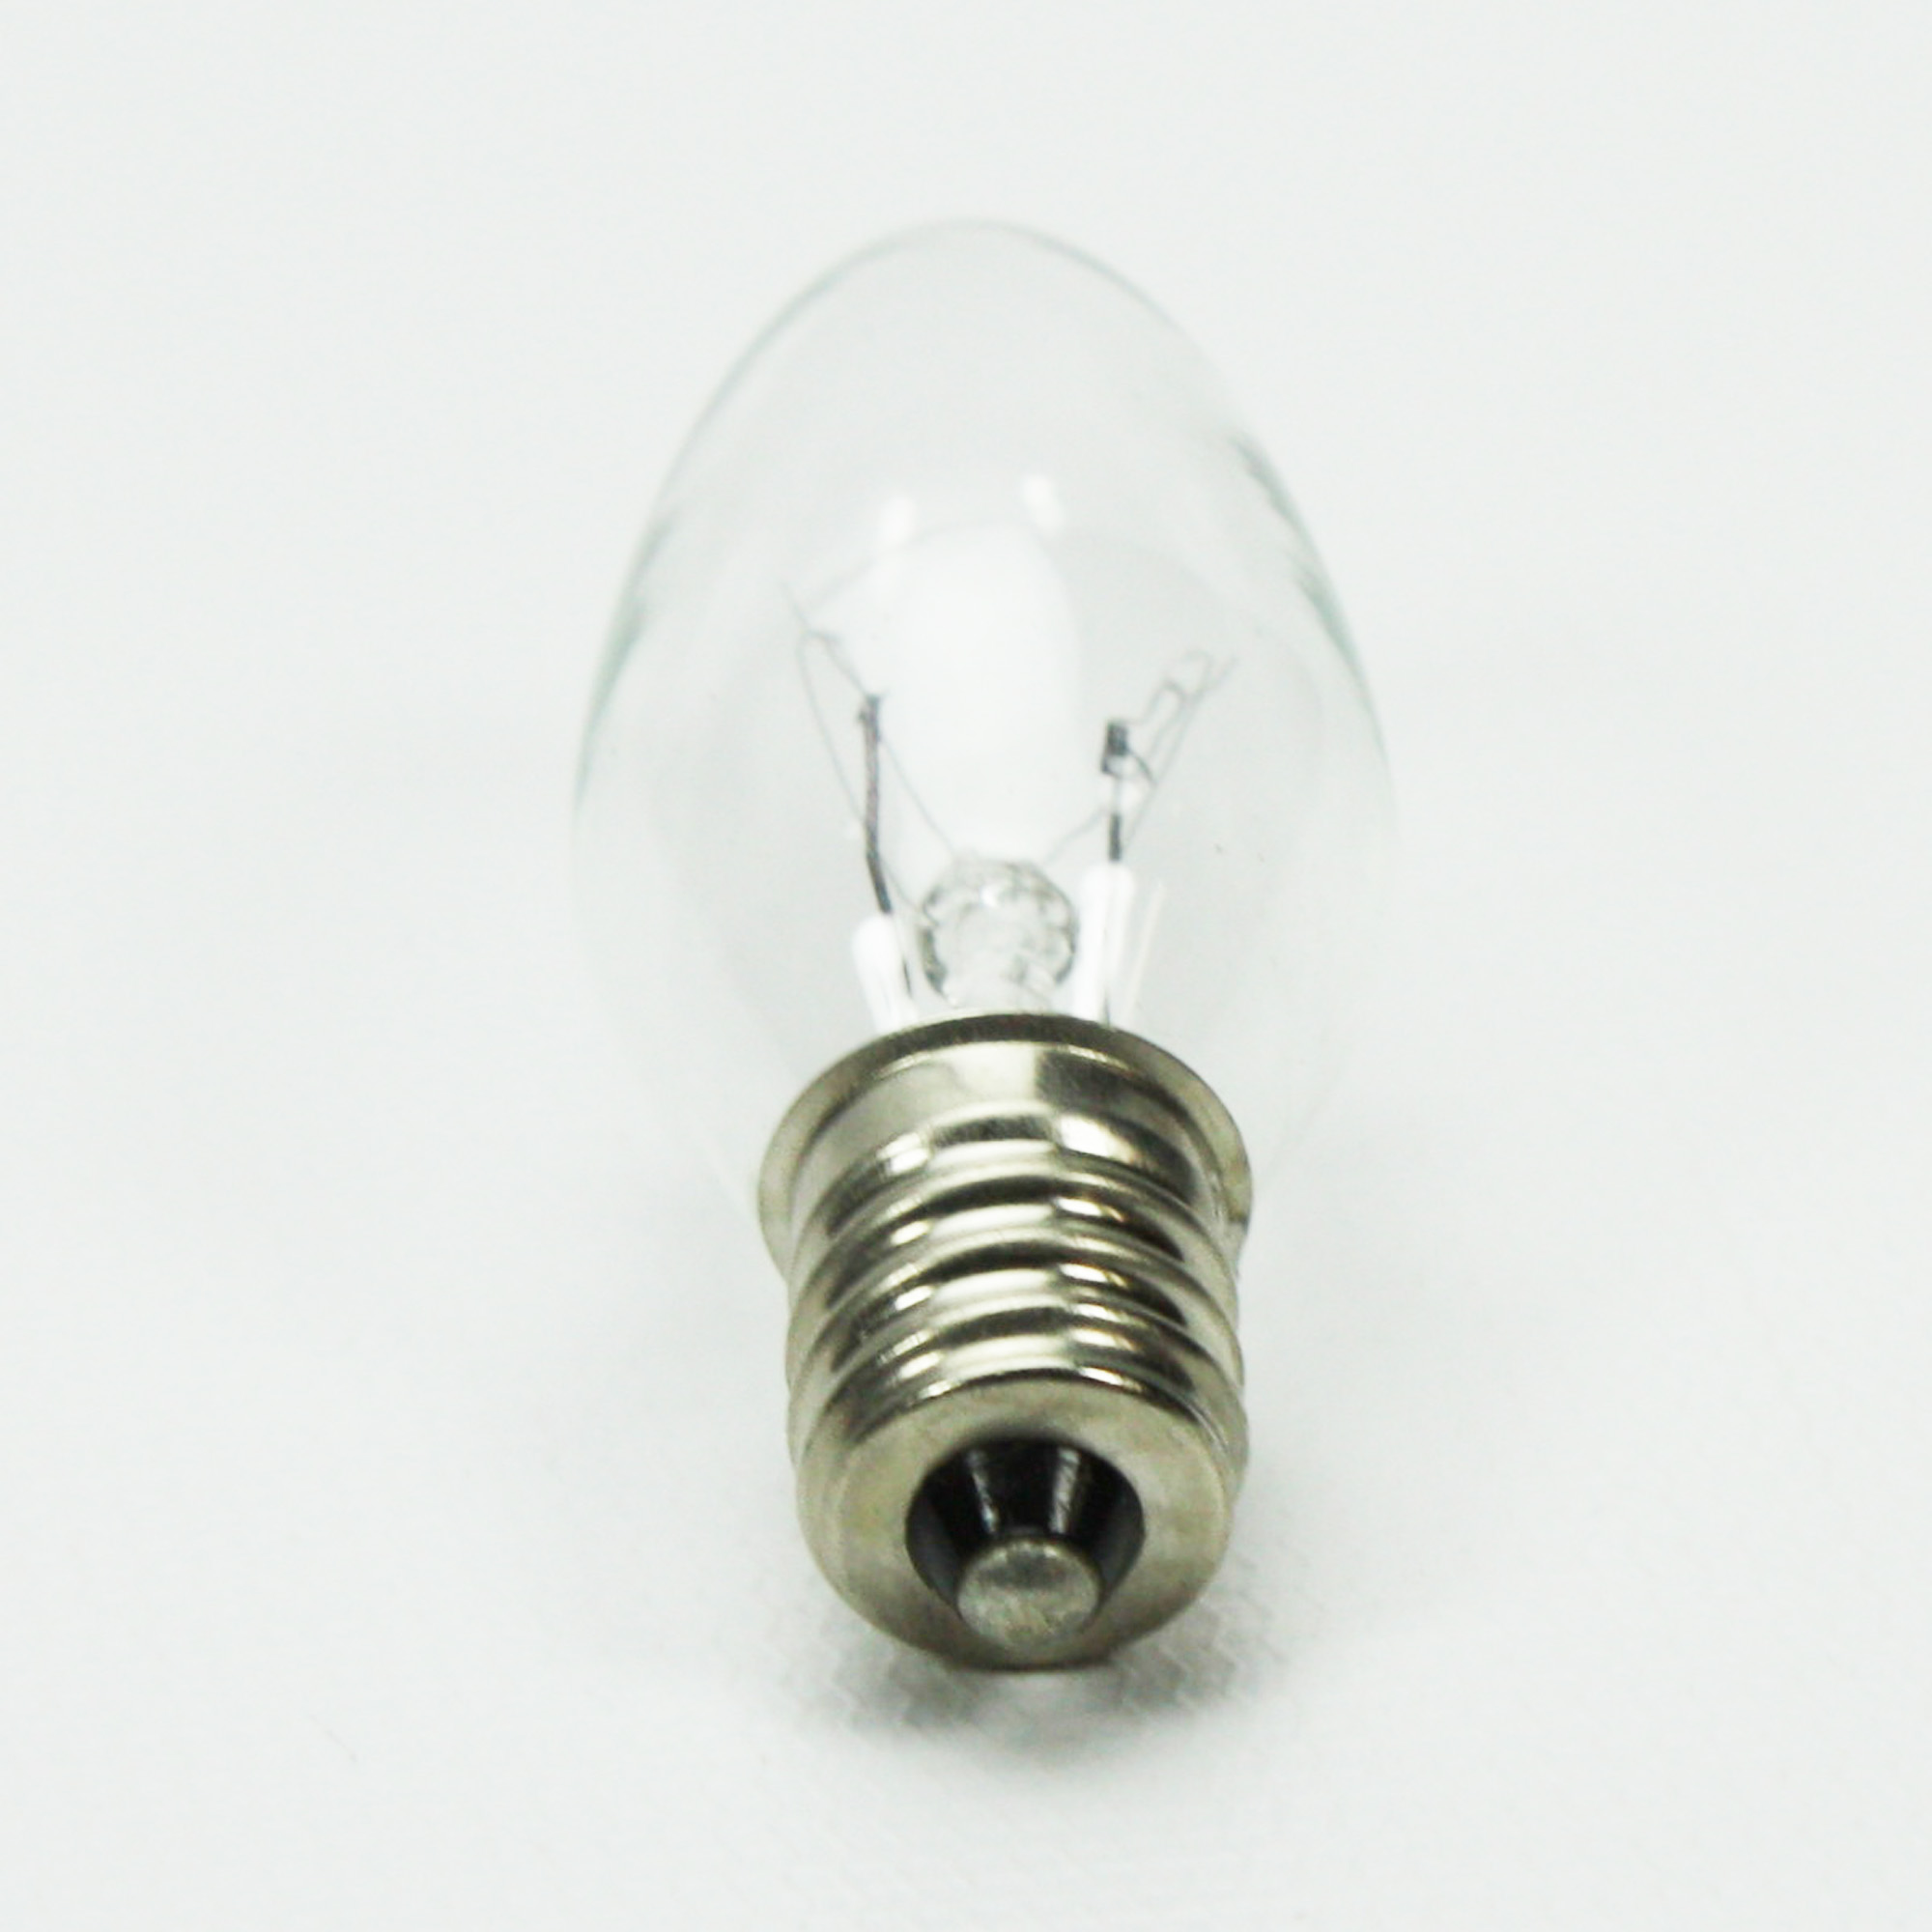 details about w10857122 67001316 whirlpool microwave light bulb. Black Bedroom Furniture Sets. Home Design Ideas